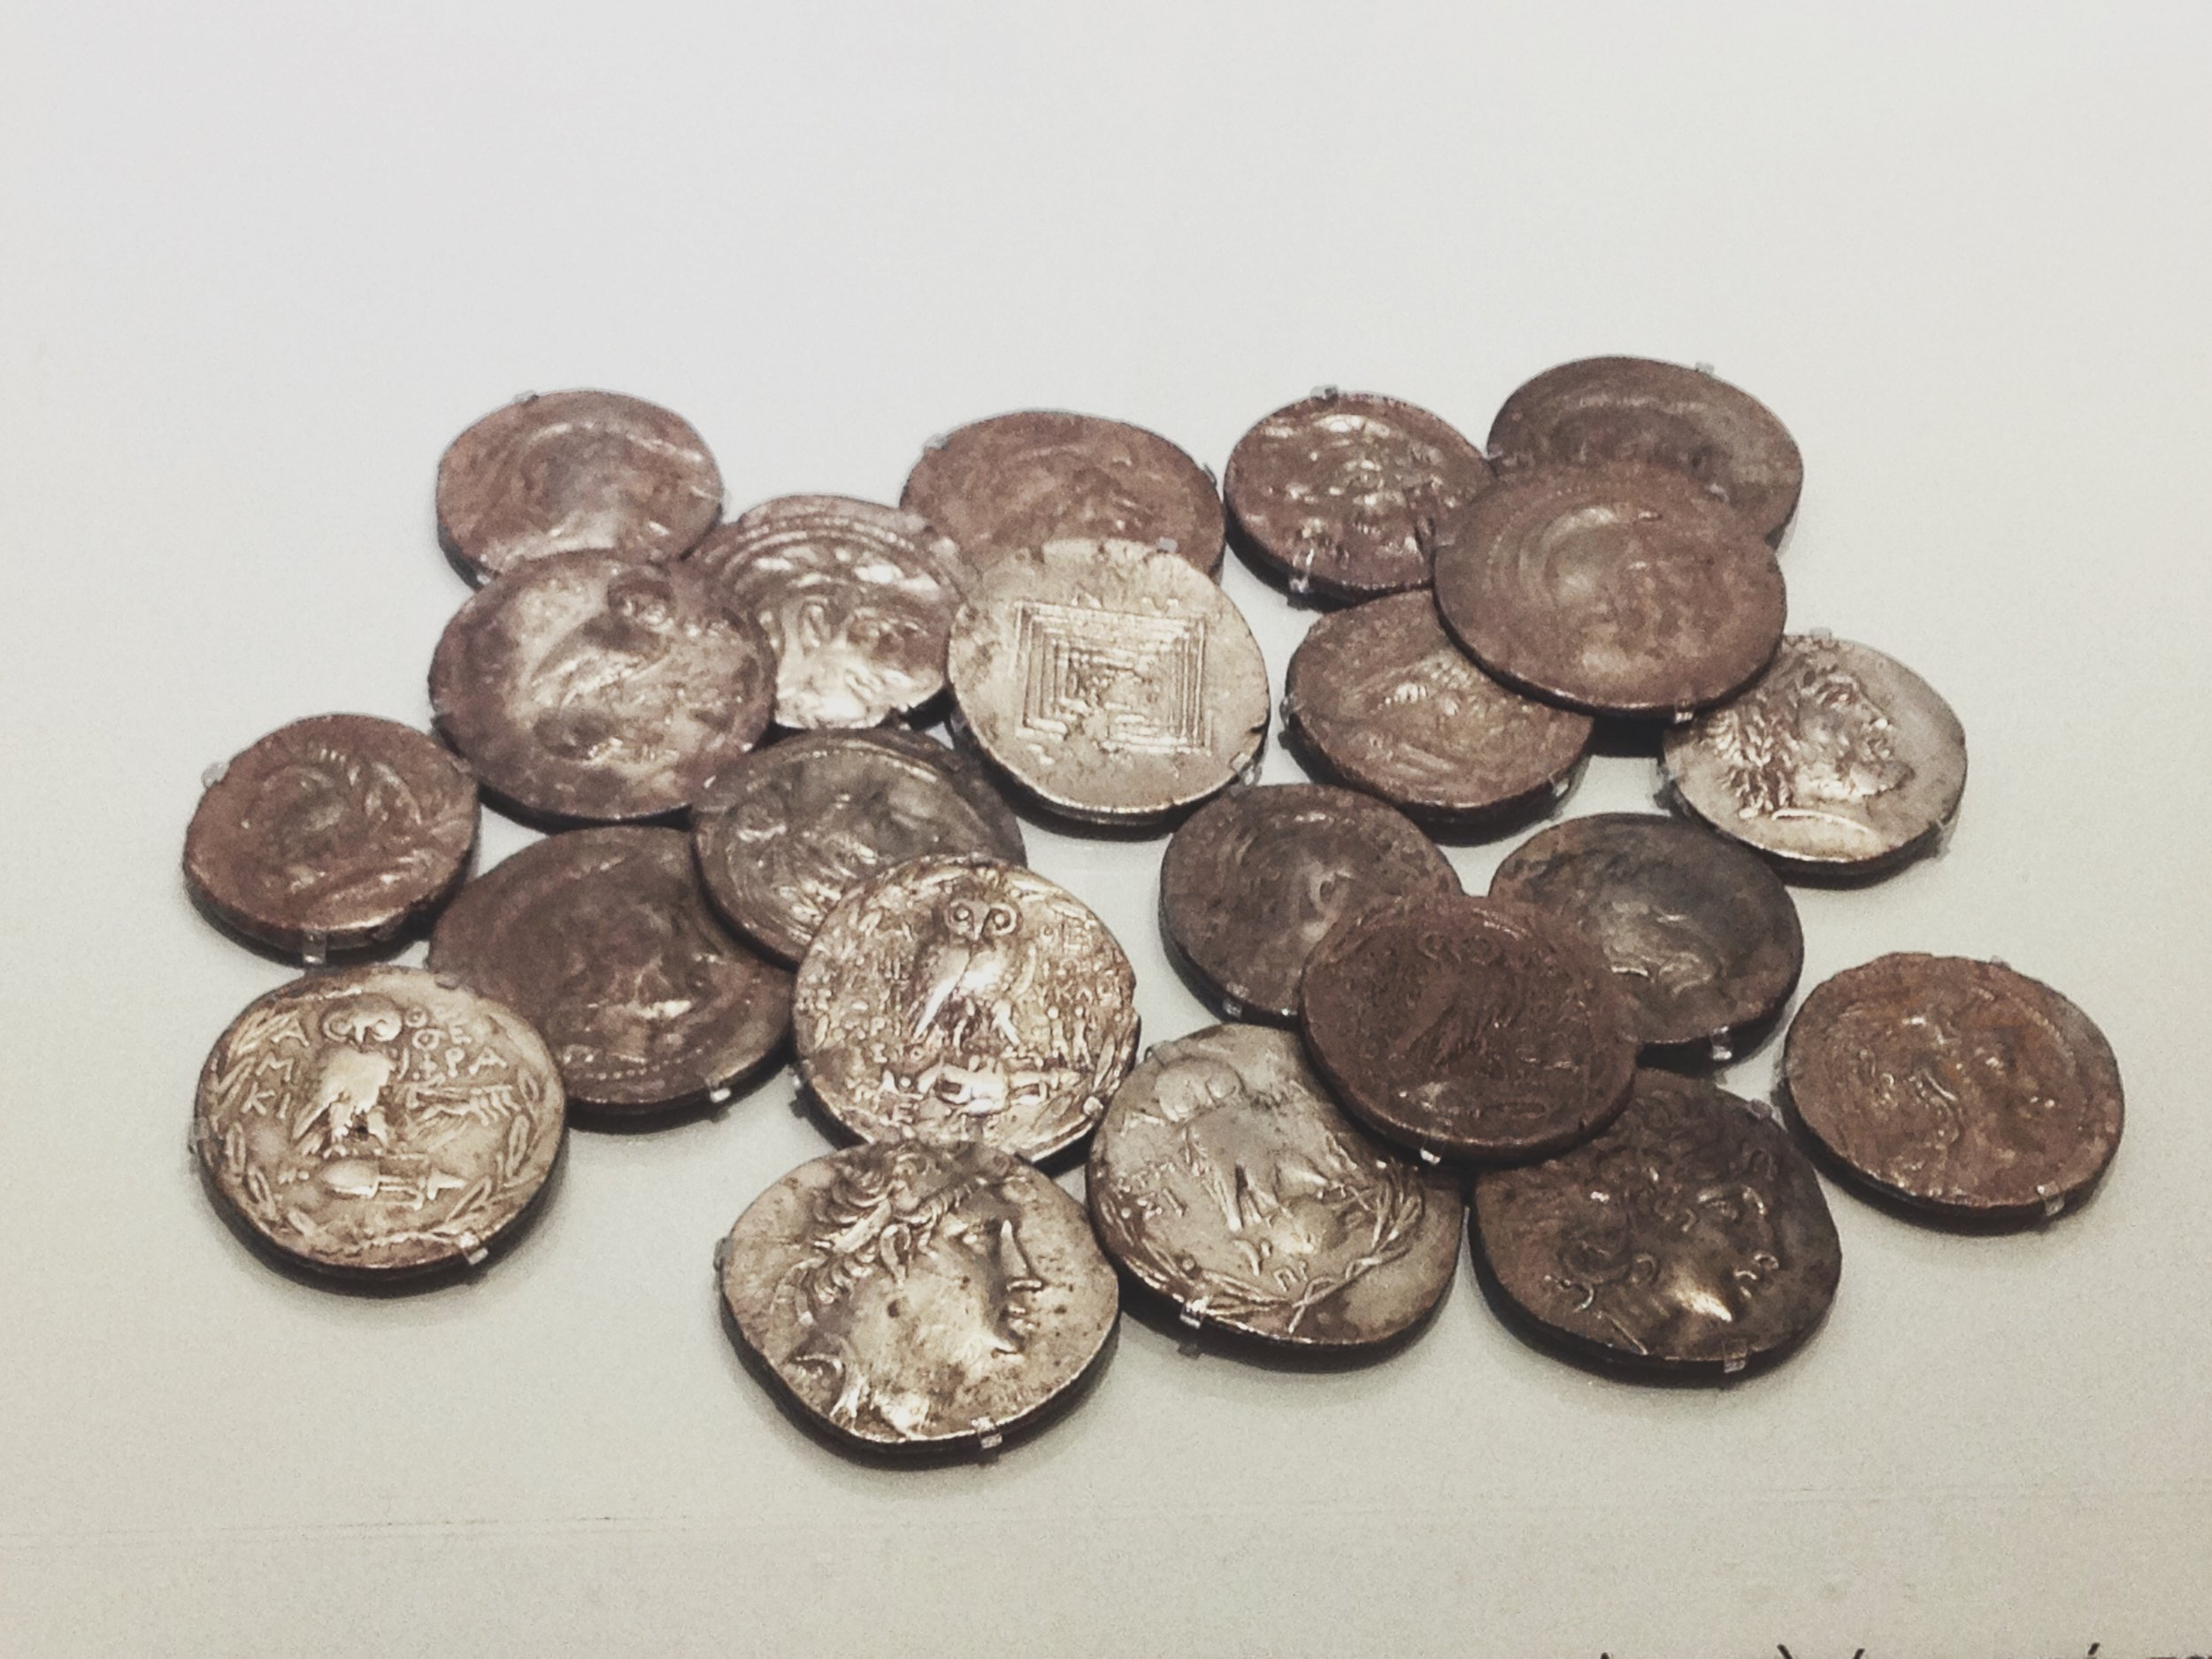 Ancient Greek Coins - not so different from today (Picture by Katherine Poseidon)